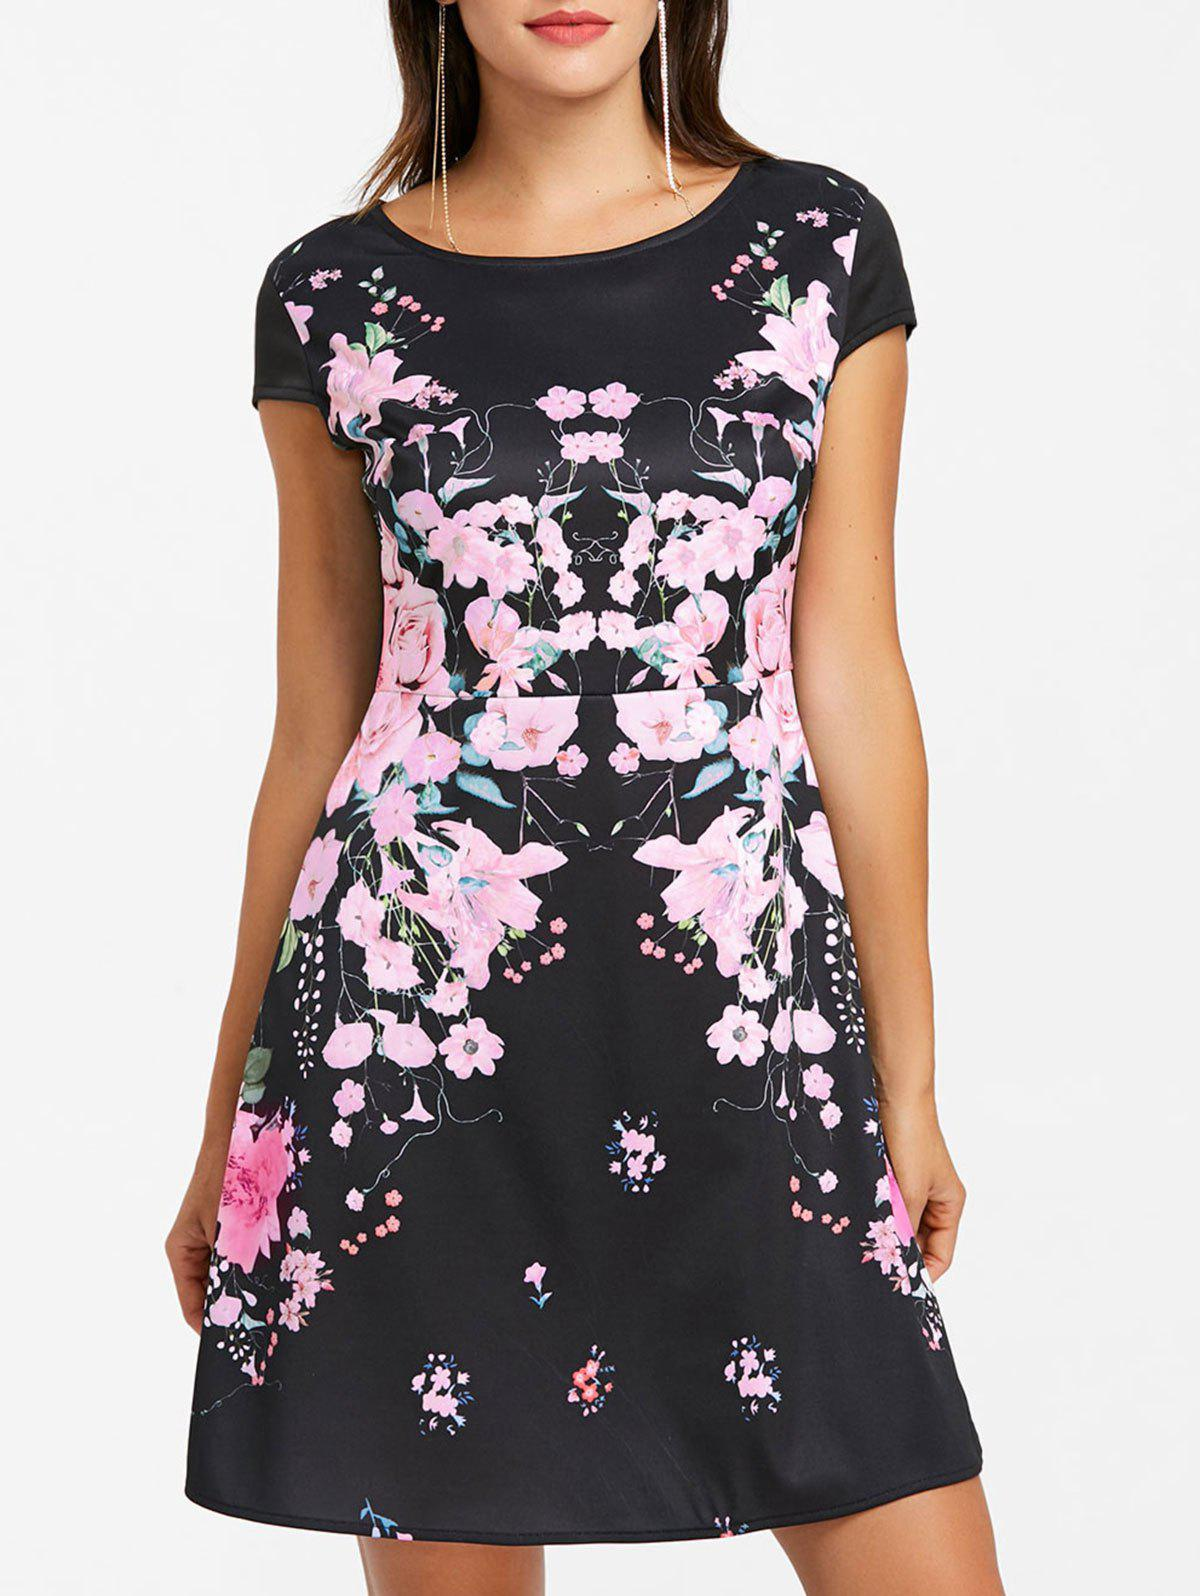 A-line Flower Print Dress - BLACK XL